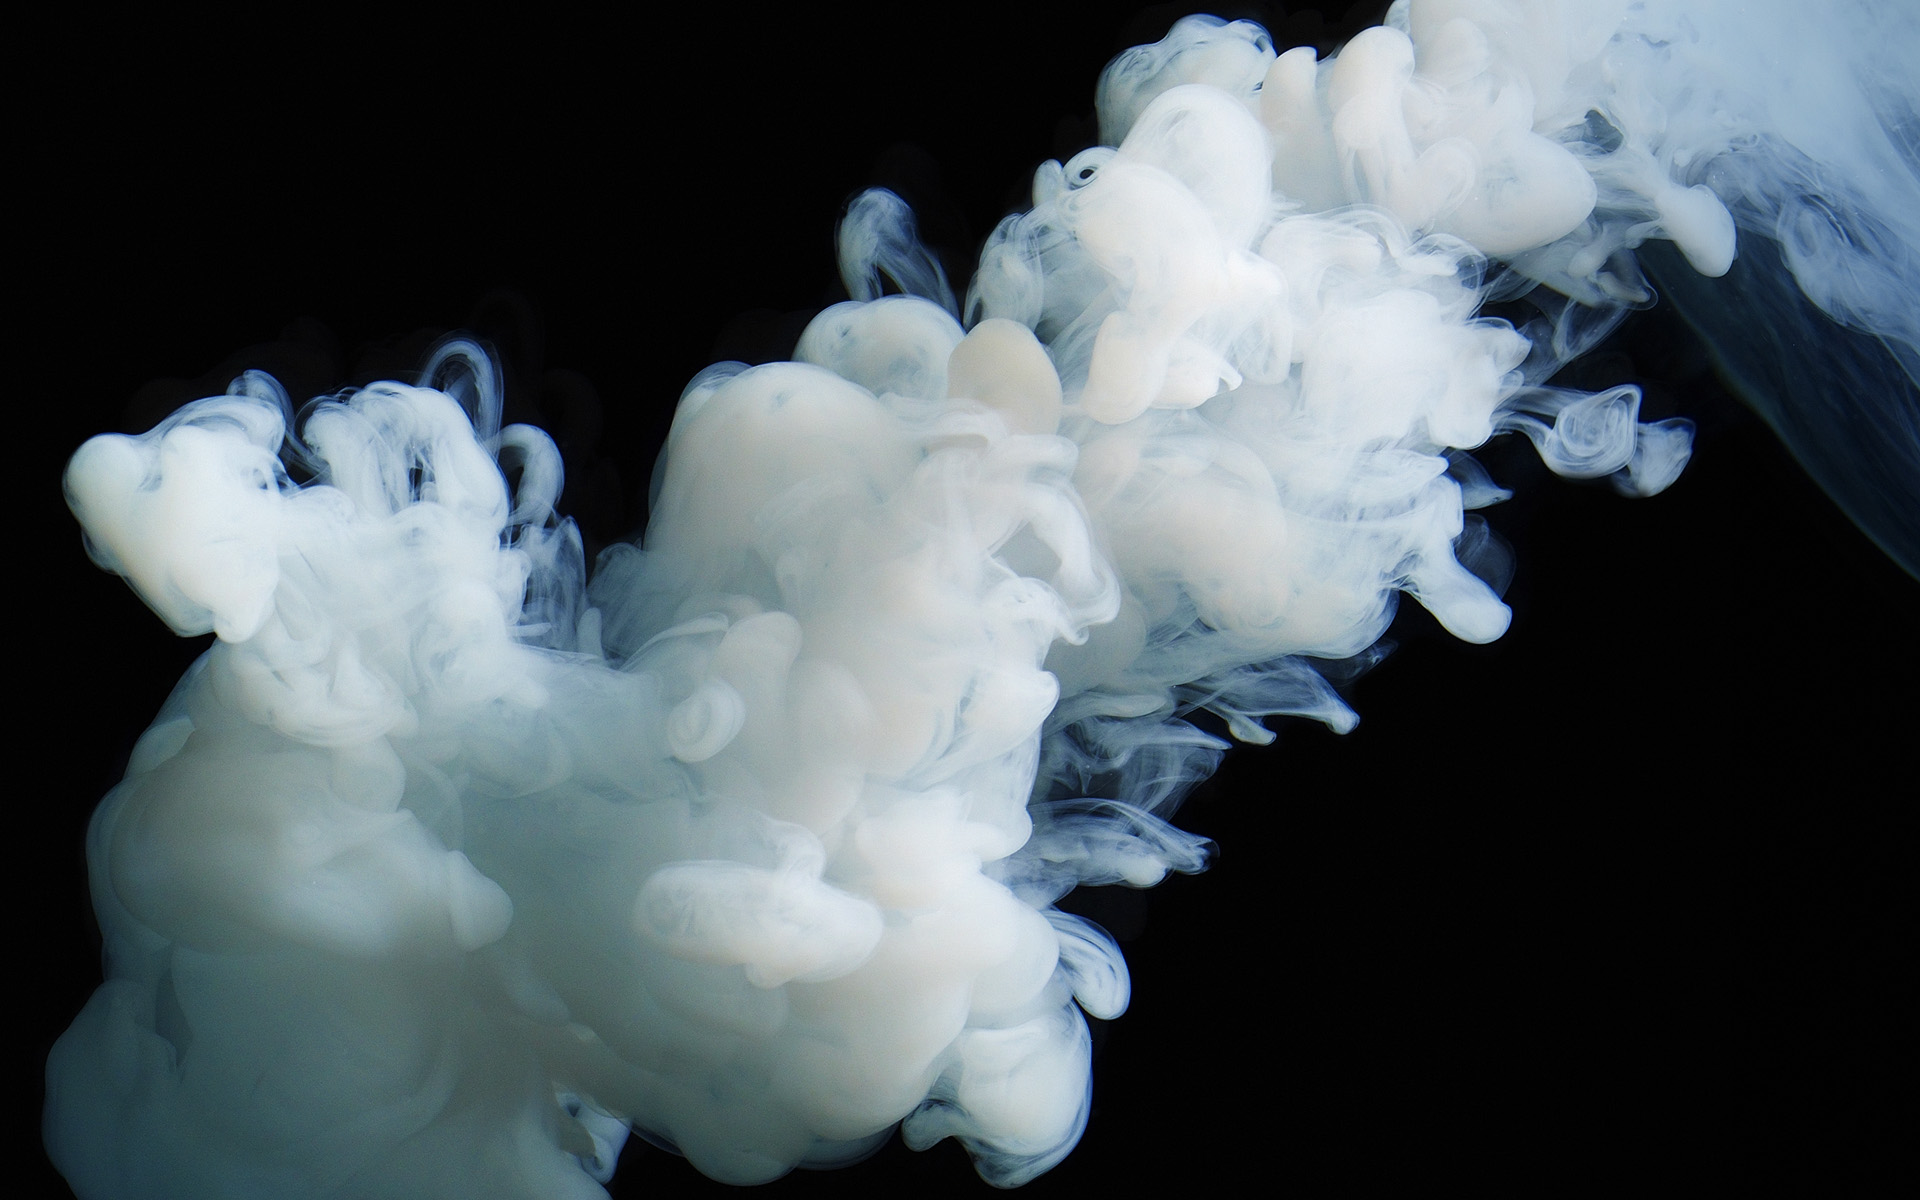 hd 1080p wallpaper smoke - photo #34